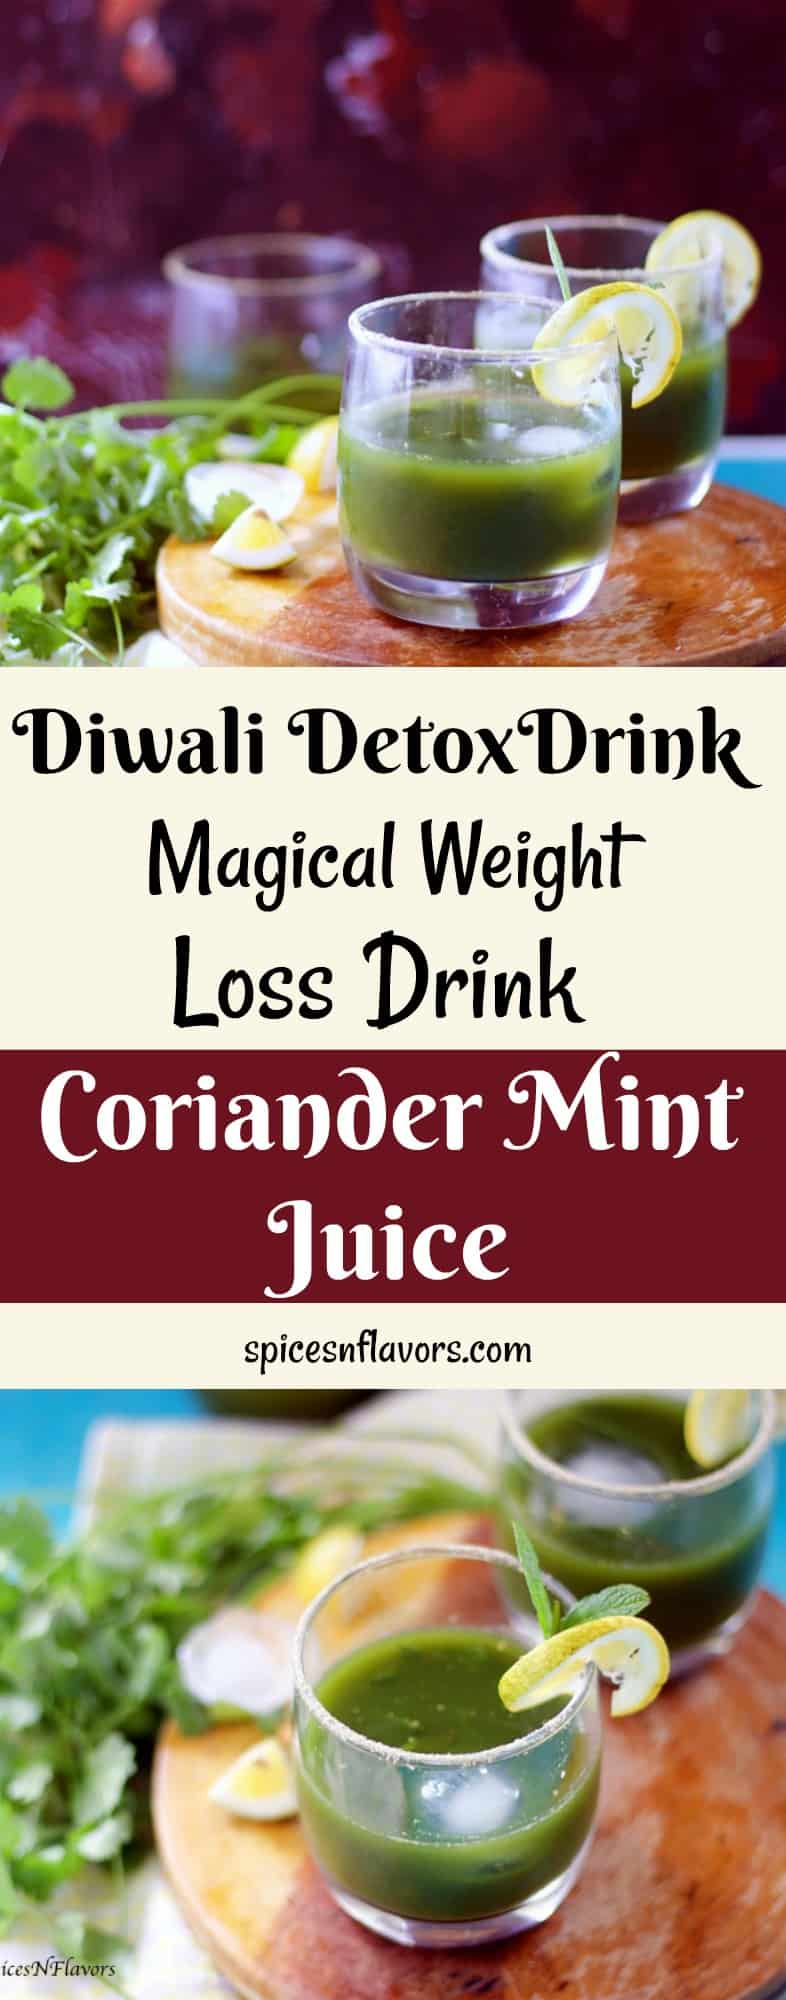 coriander mint juice healthy juice recipe healthy drink to lose weight weight loss drinks detox drink easy detox drink diwali detox drink